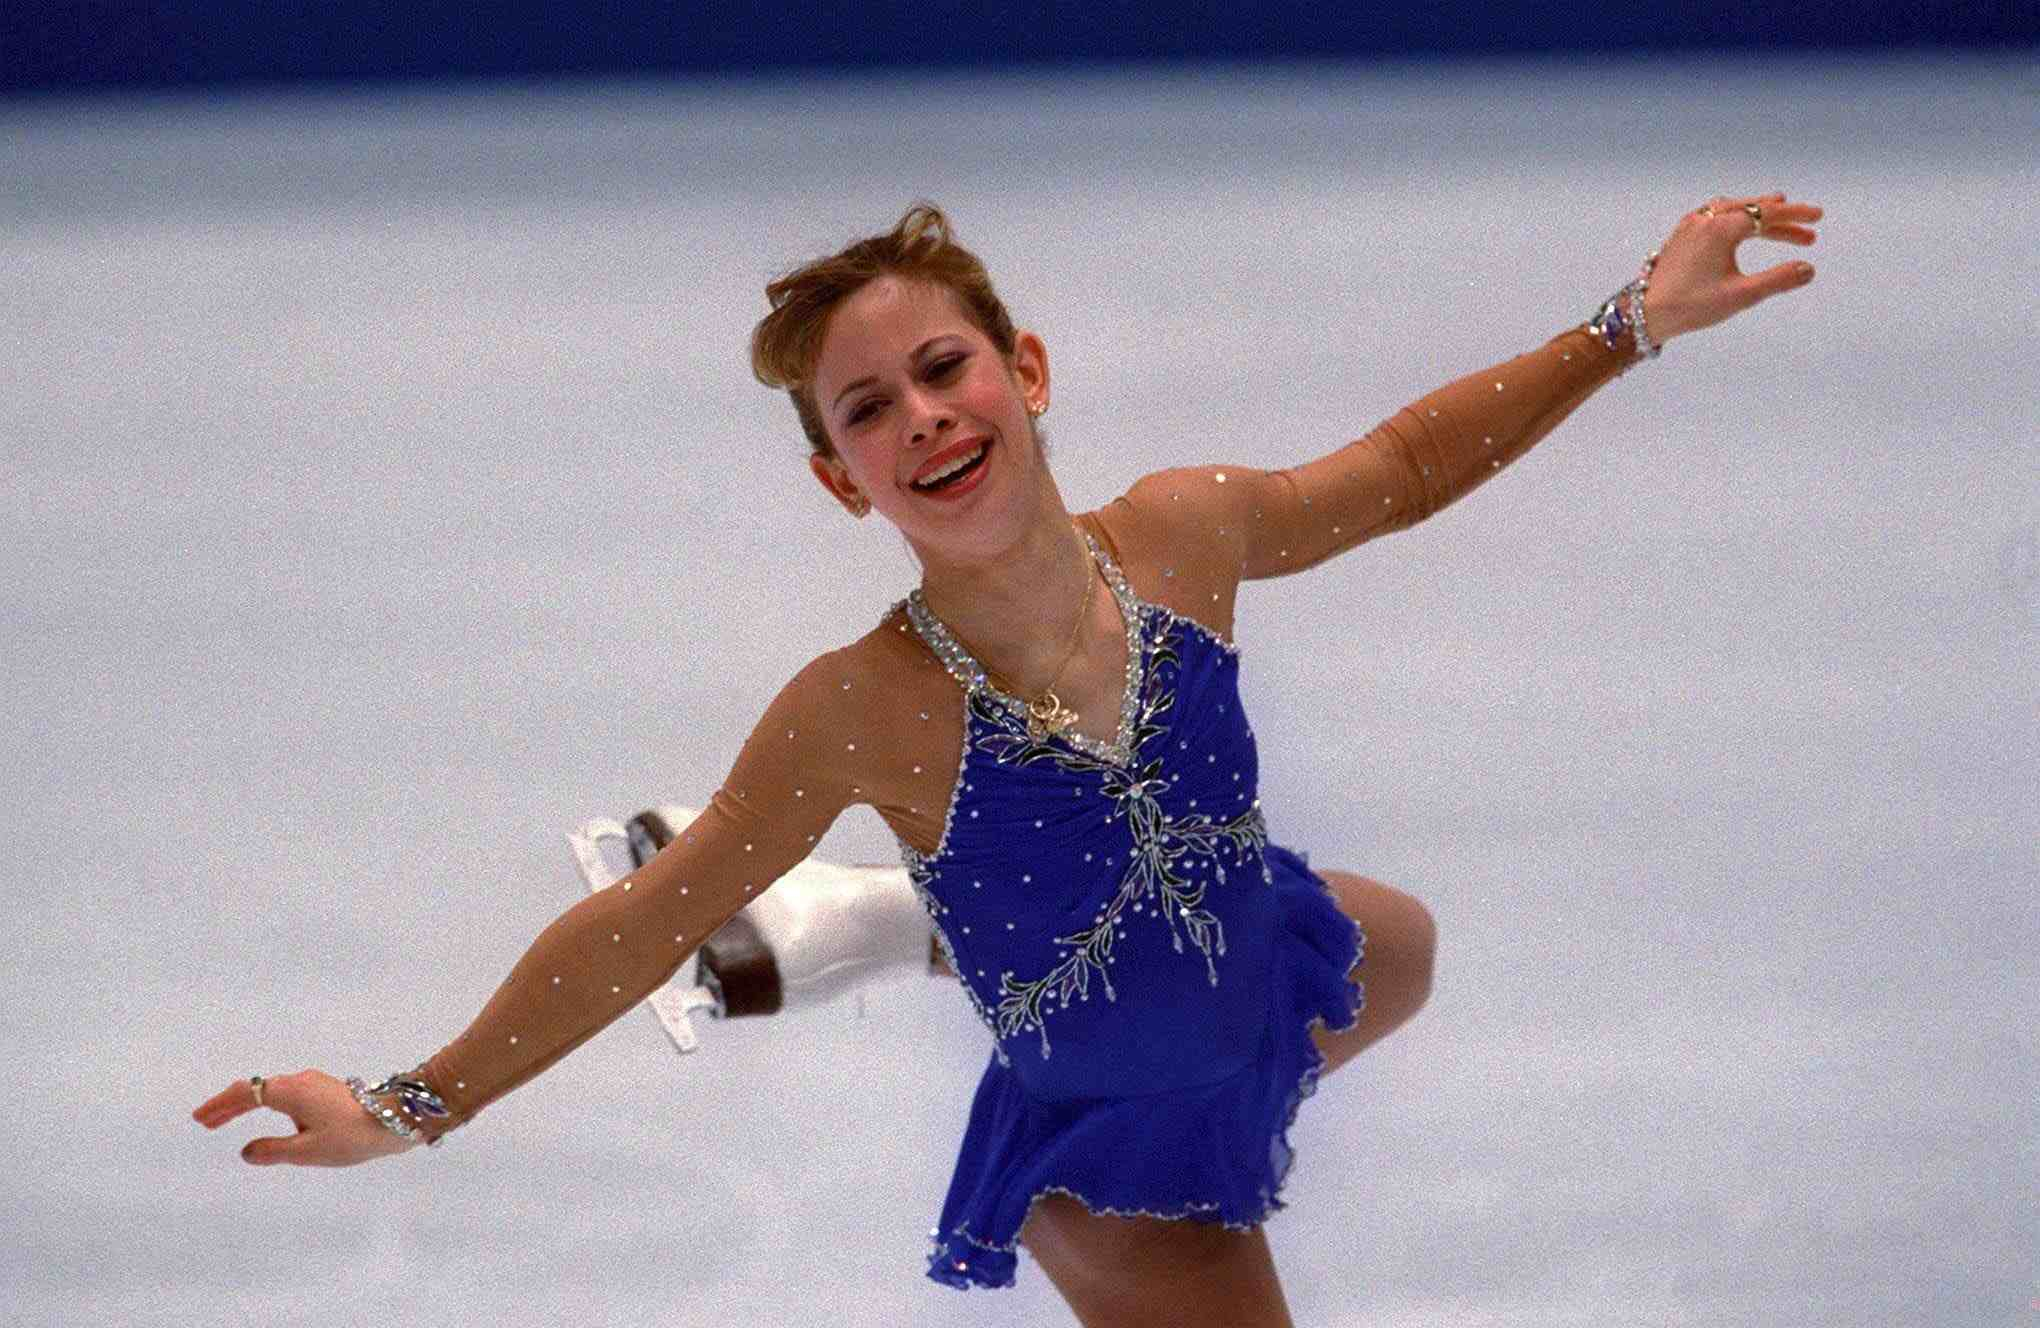 20 Famous Female Ice Skaters Who Won Olympic Medals